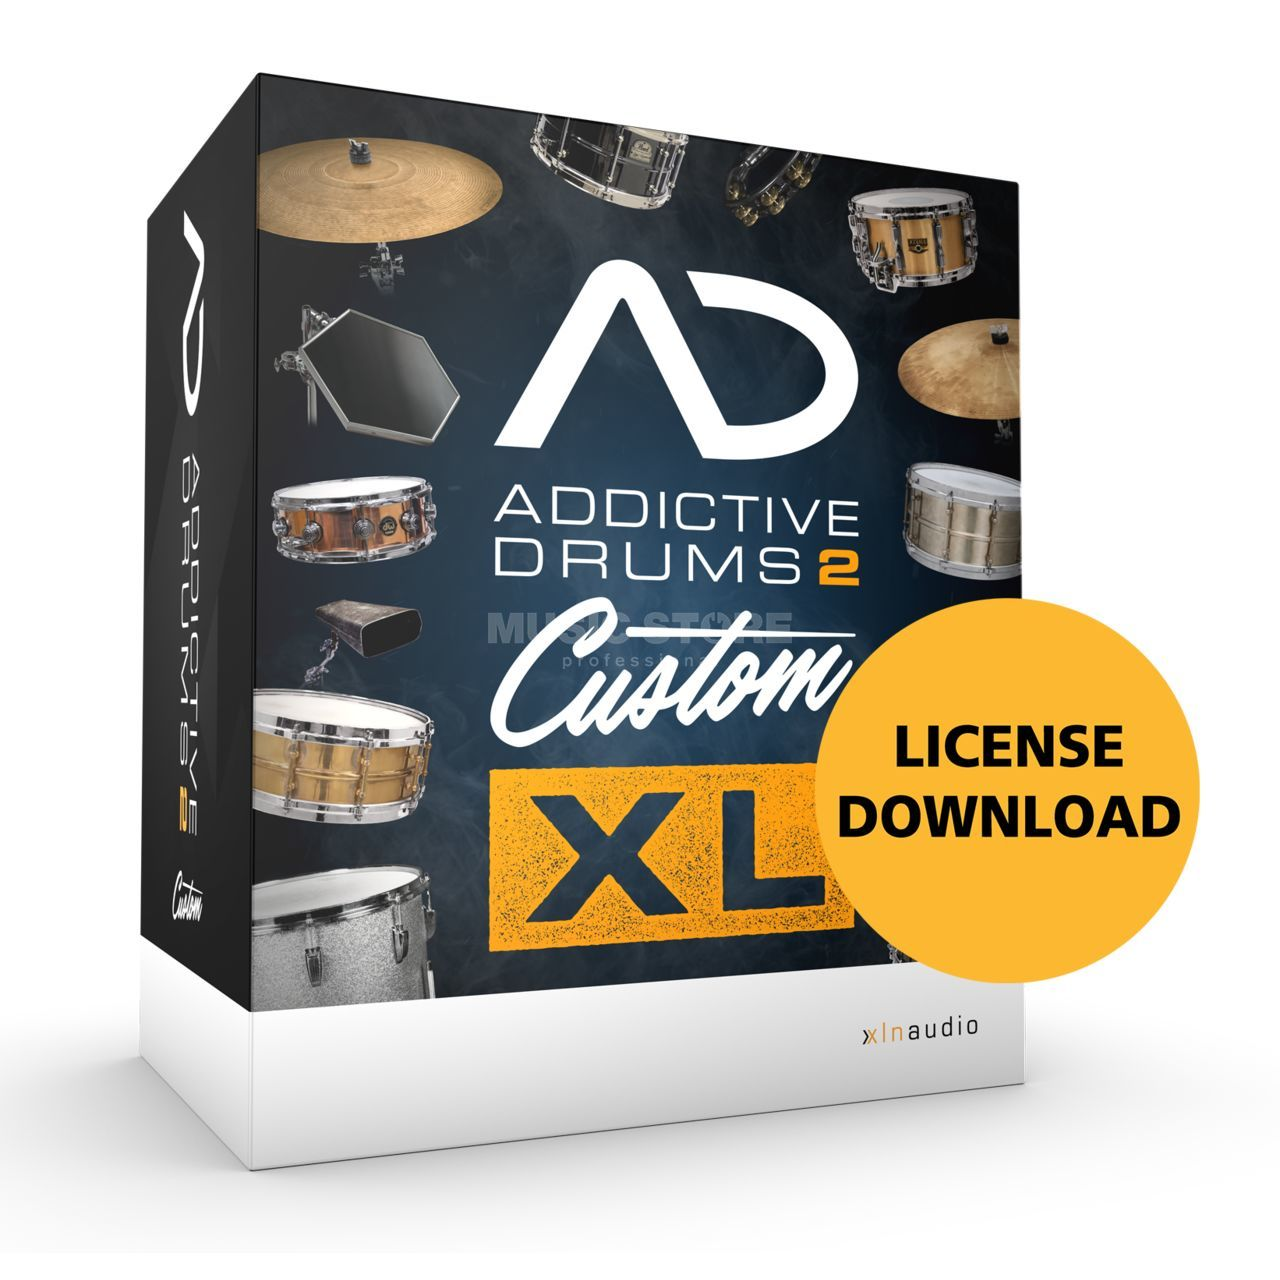 XLN Audio Addictive Drums 2 Cust XL License Code | MUSIC STORE professional